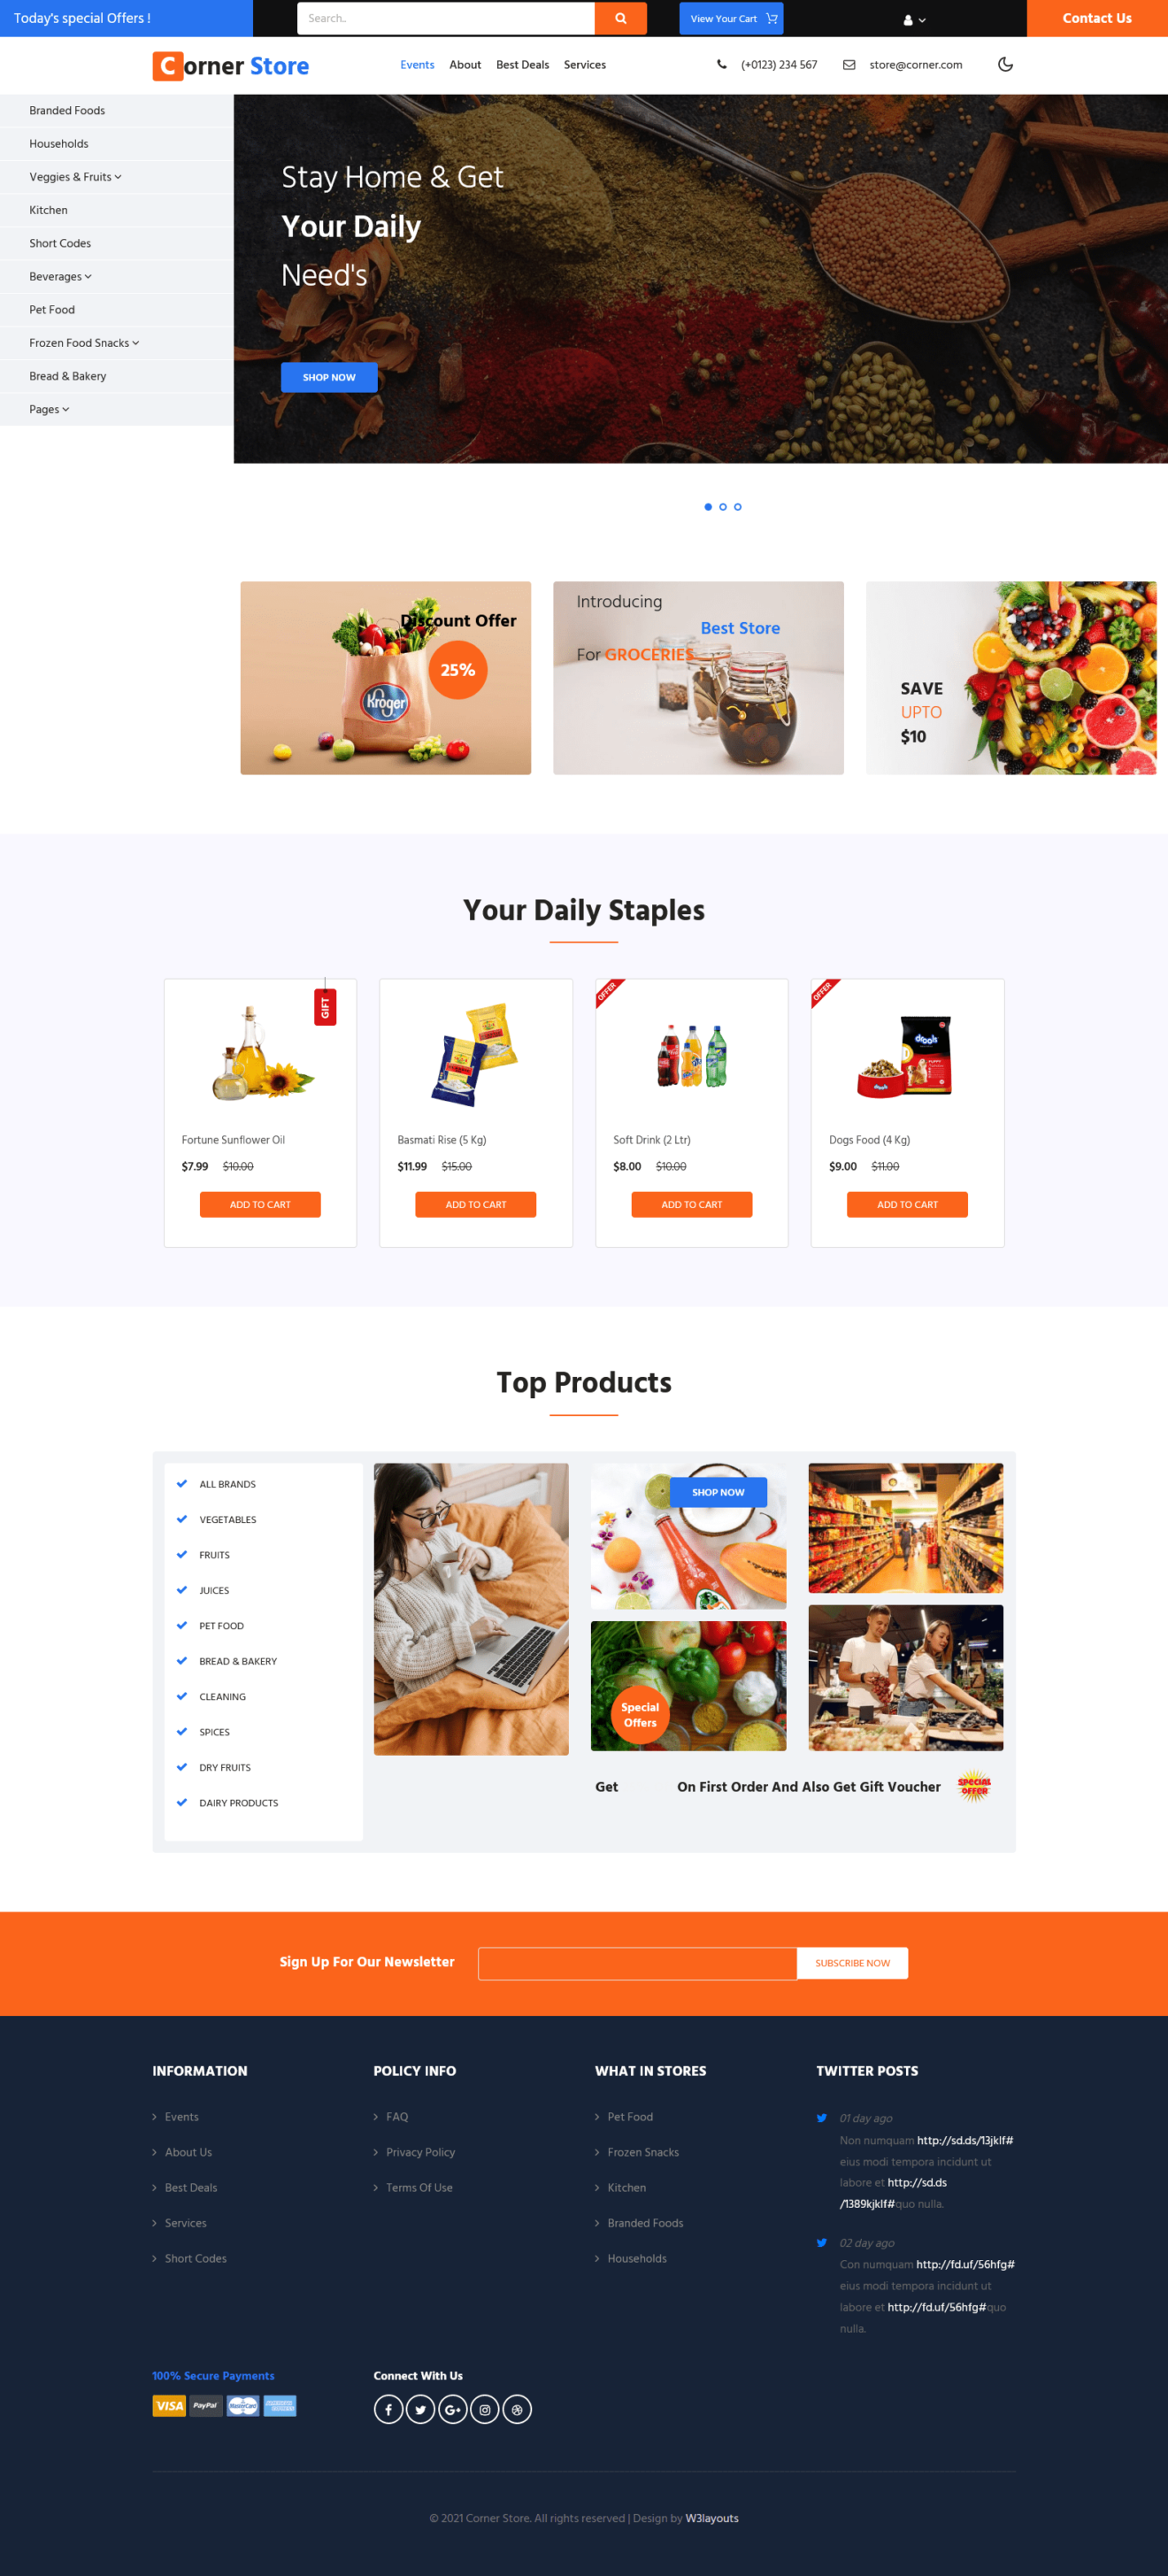 Corner store a ecommerce vendor website template home page